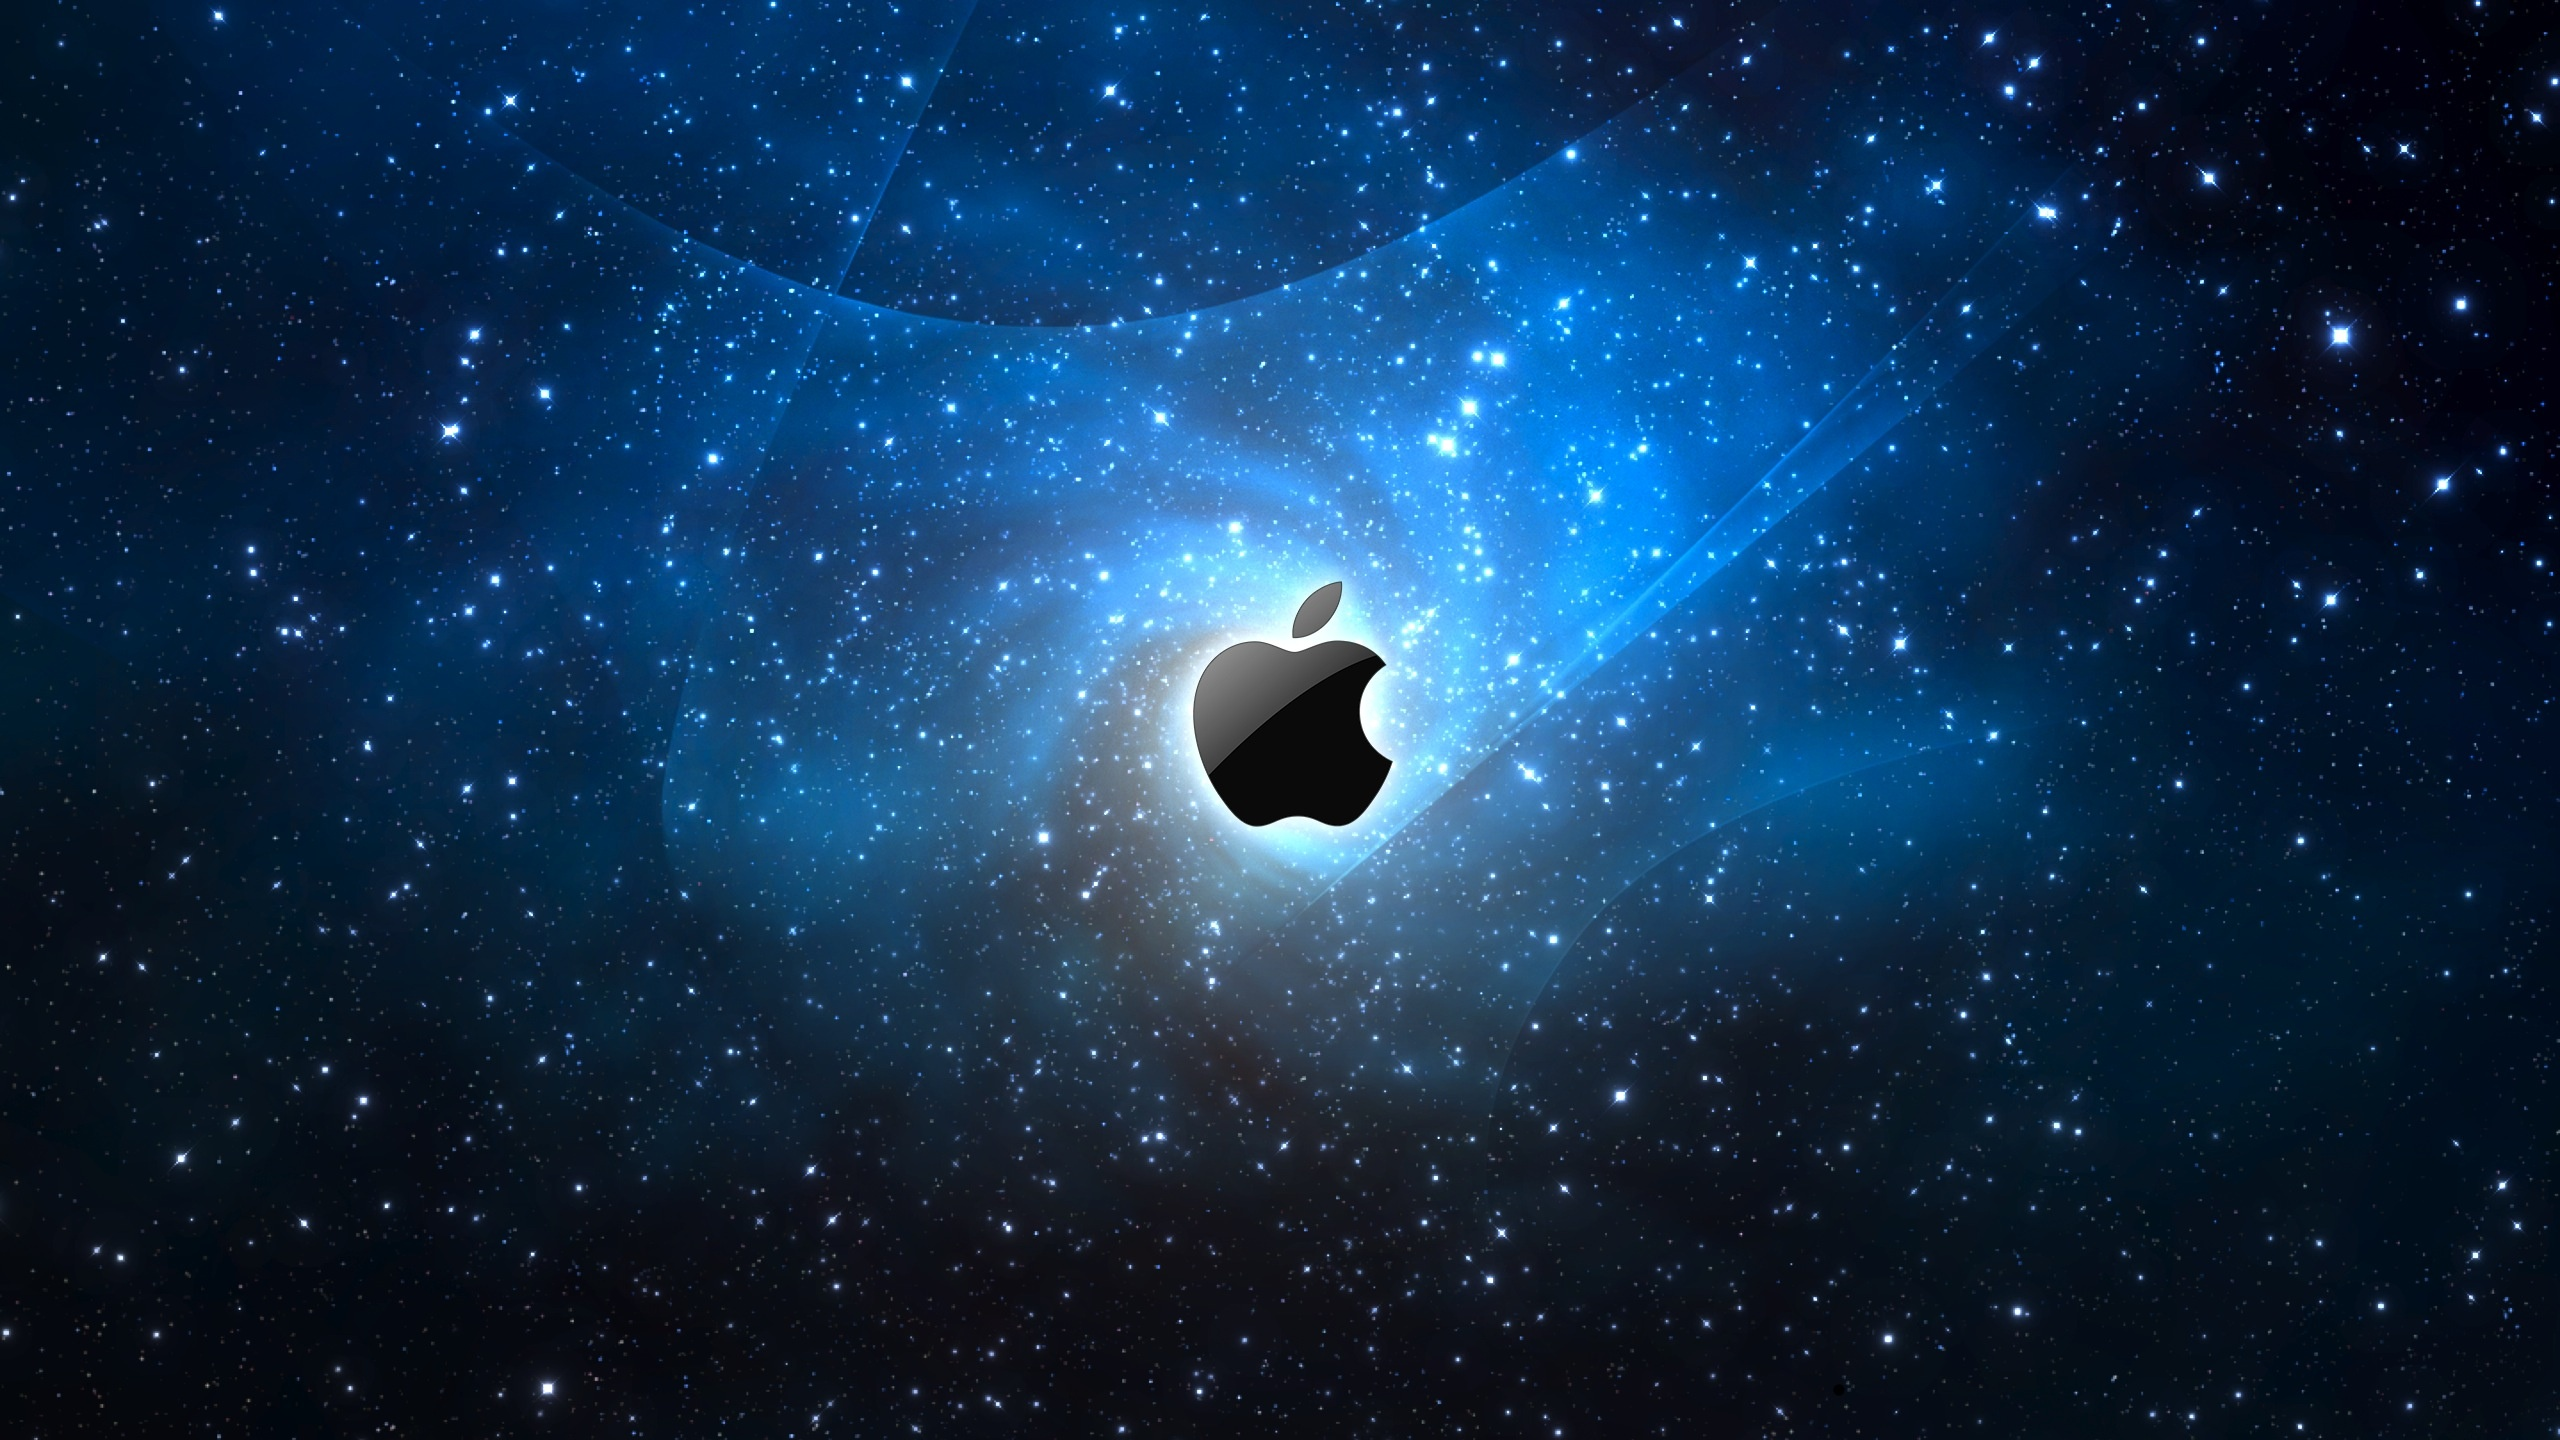 2560x1440 Space Apple logo desktop PC and Mac wallpaper 2560x1440